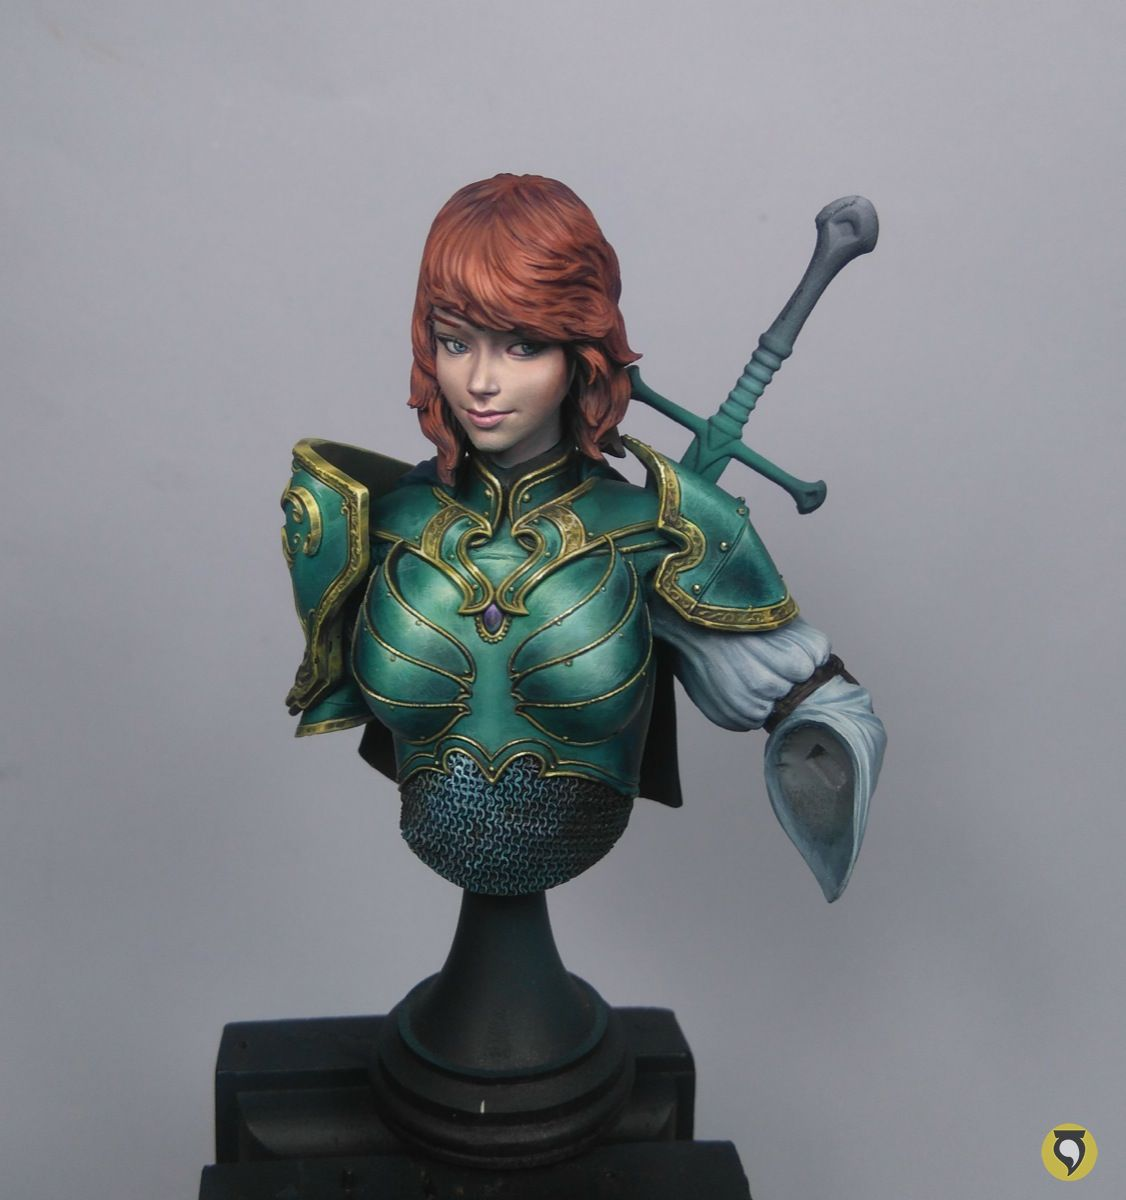 excelsy-bust-marc-masclans-article-tutorial-draconia-07